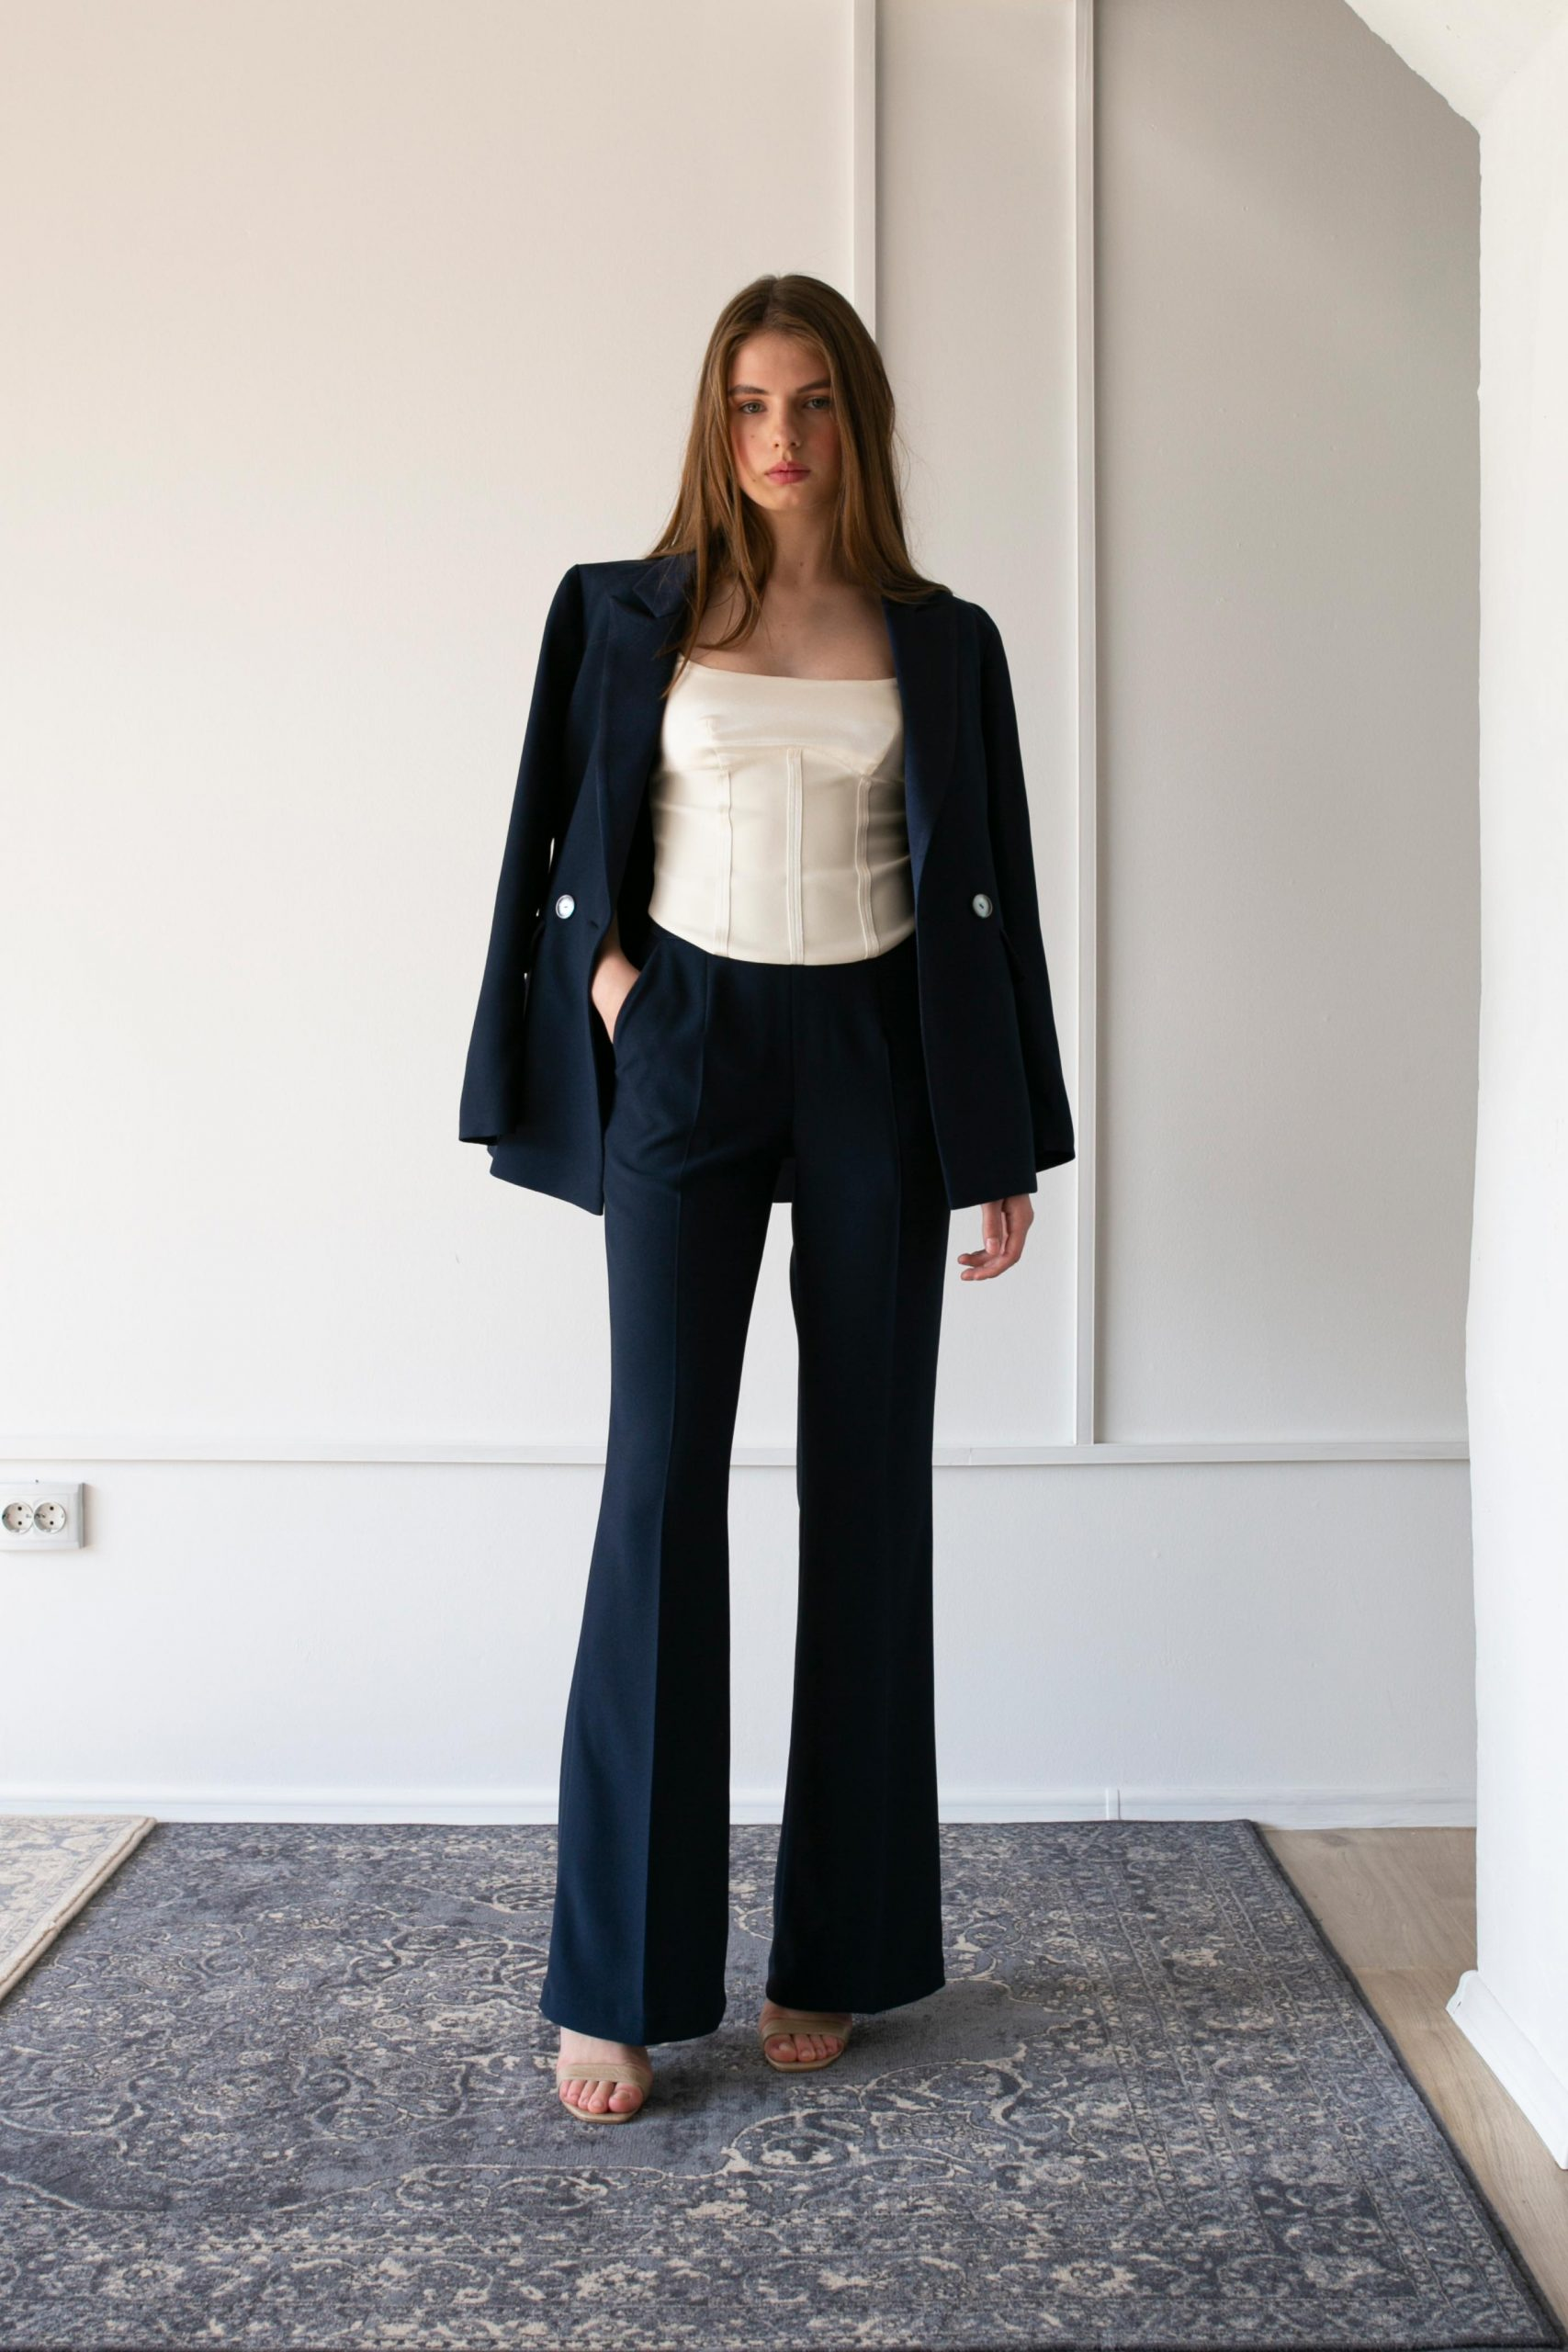 RAQUETTE SS20 - Space blue suit / Le corset in cady crepe